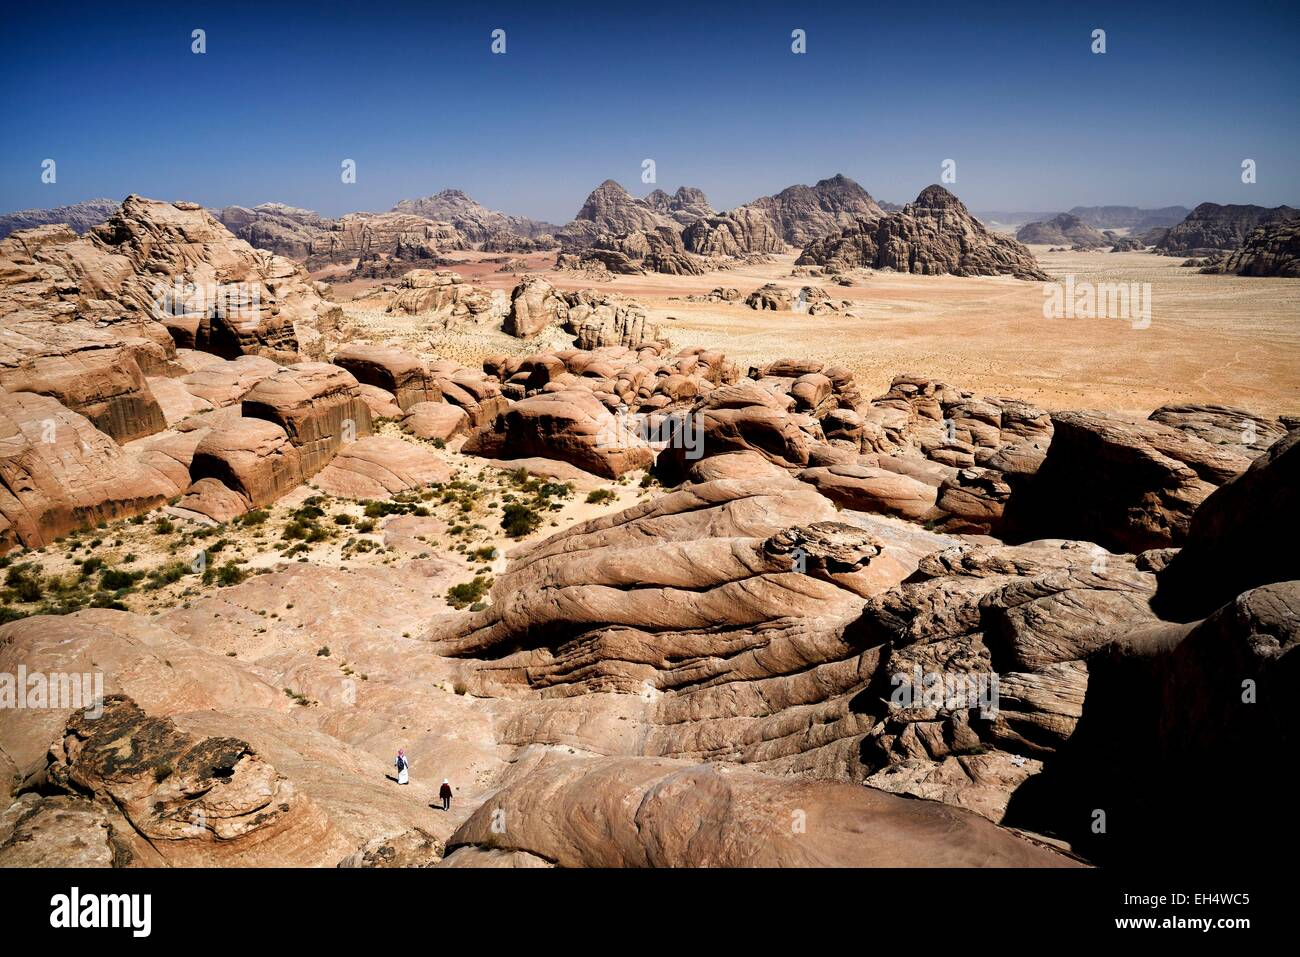 Jordan, Wadi Rum desert, protected area listed as World Heritage by UNESCO, 2 persons walking on the mount Jebel - Stock Image